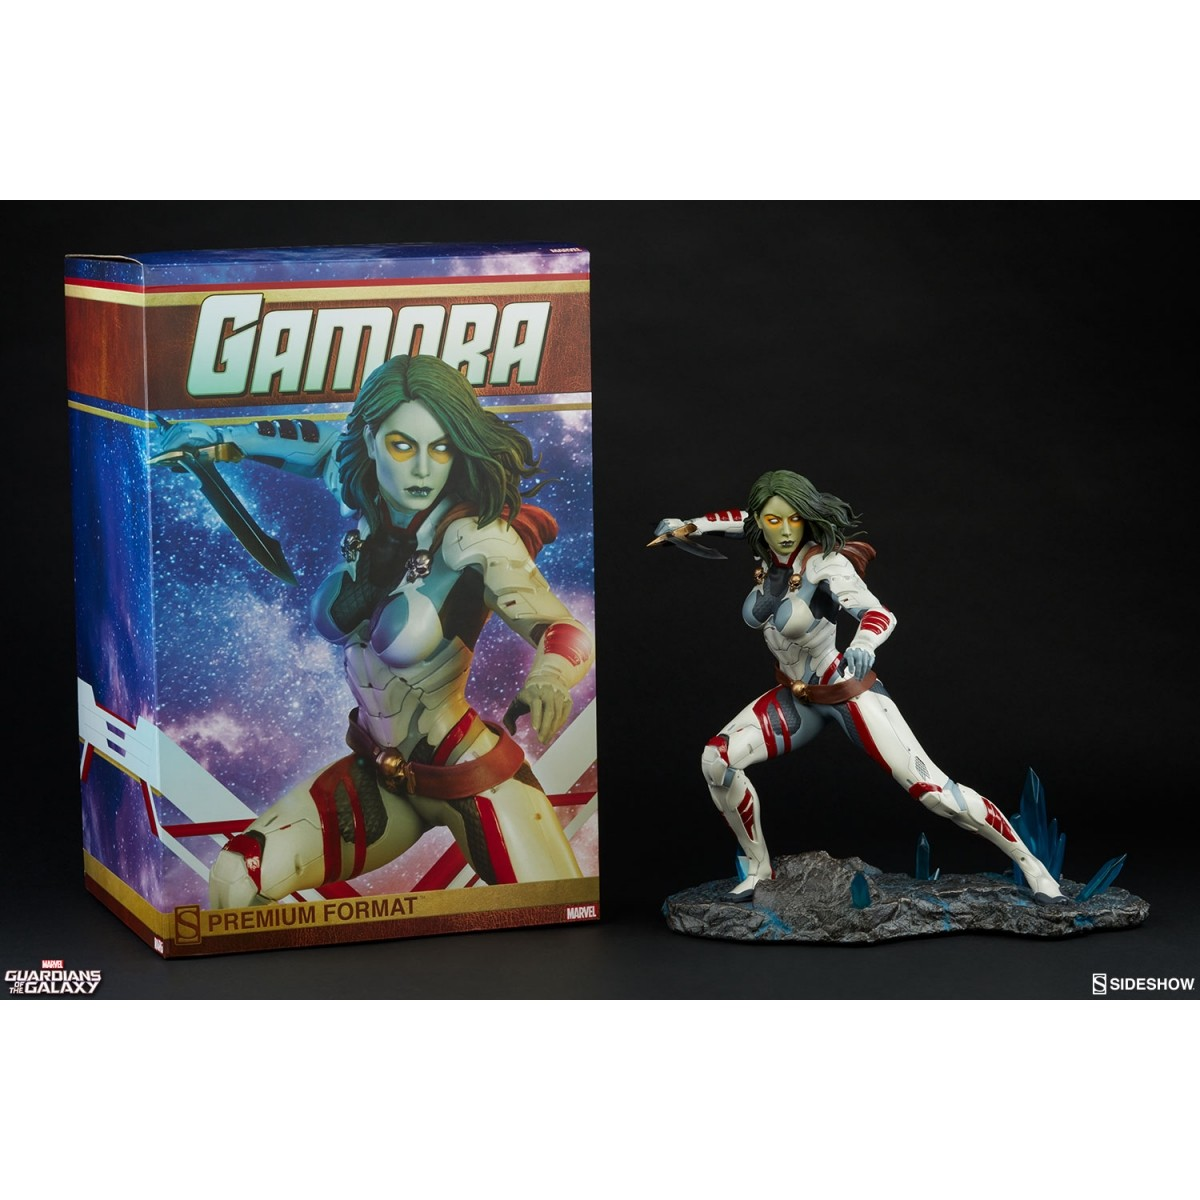 Sideshow Gamora Premium Format Exclusive Gotg  - Movie Freaks Collectibles